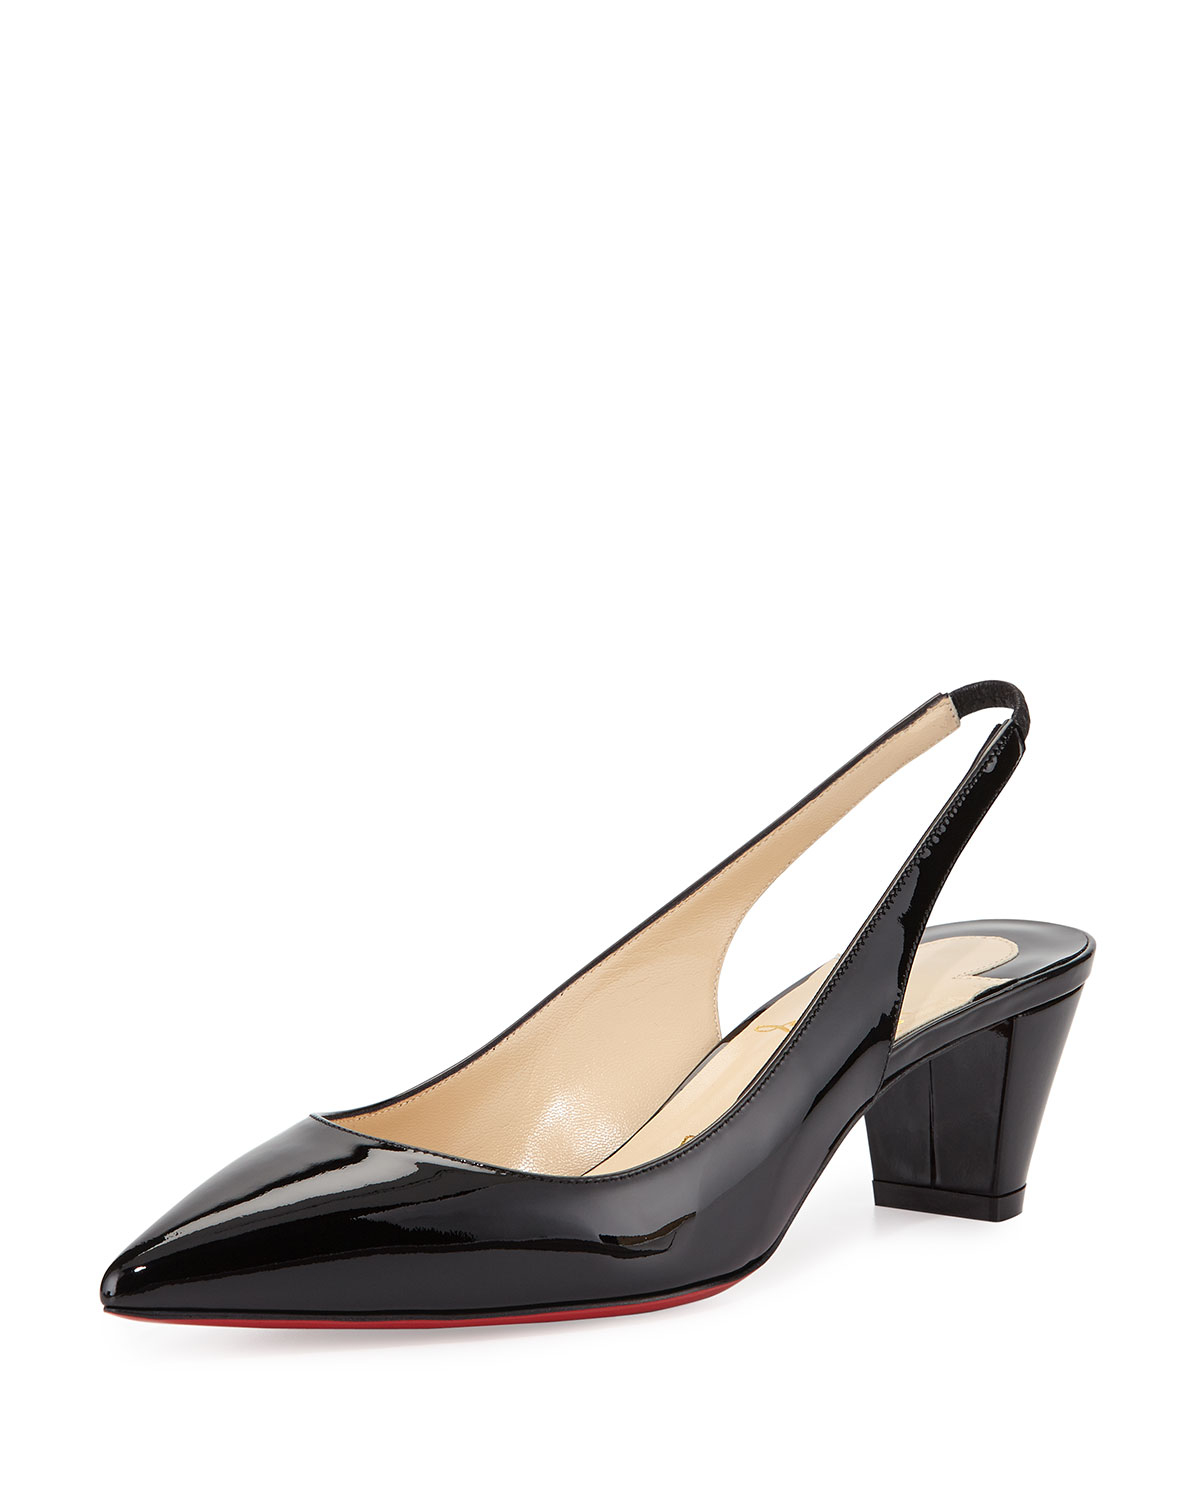 mens red bottom dress shoes - Christian louboutin Karelli Slingback Red Sole Pump in Black (red ...